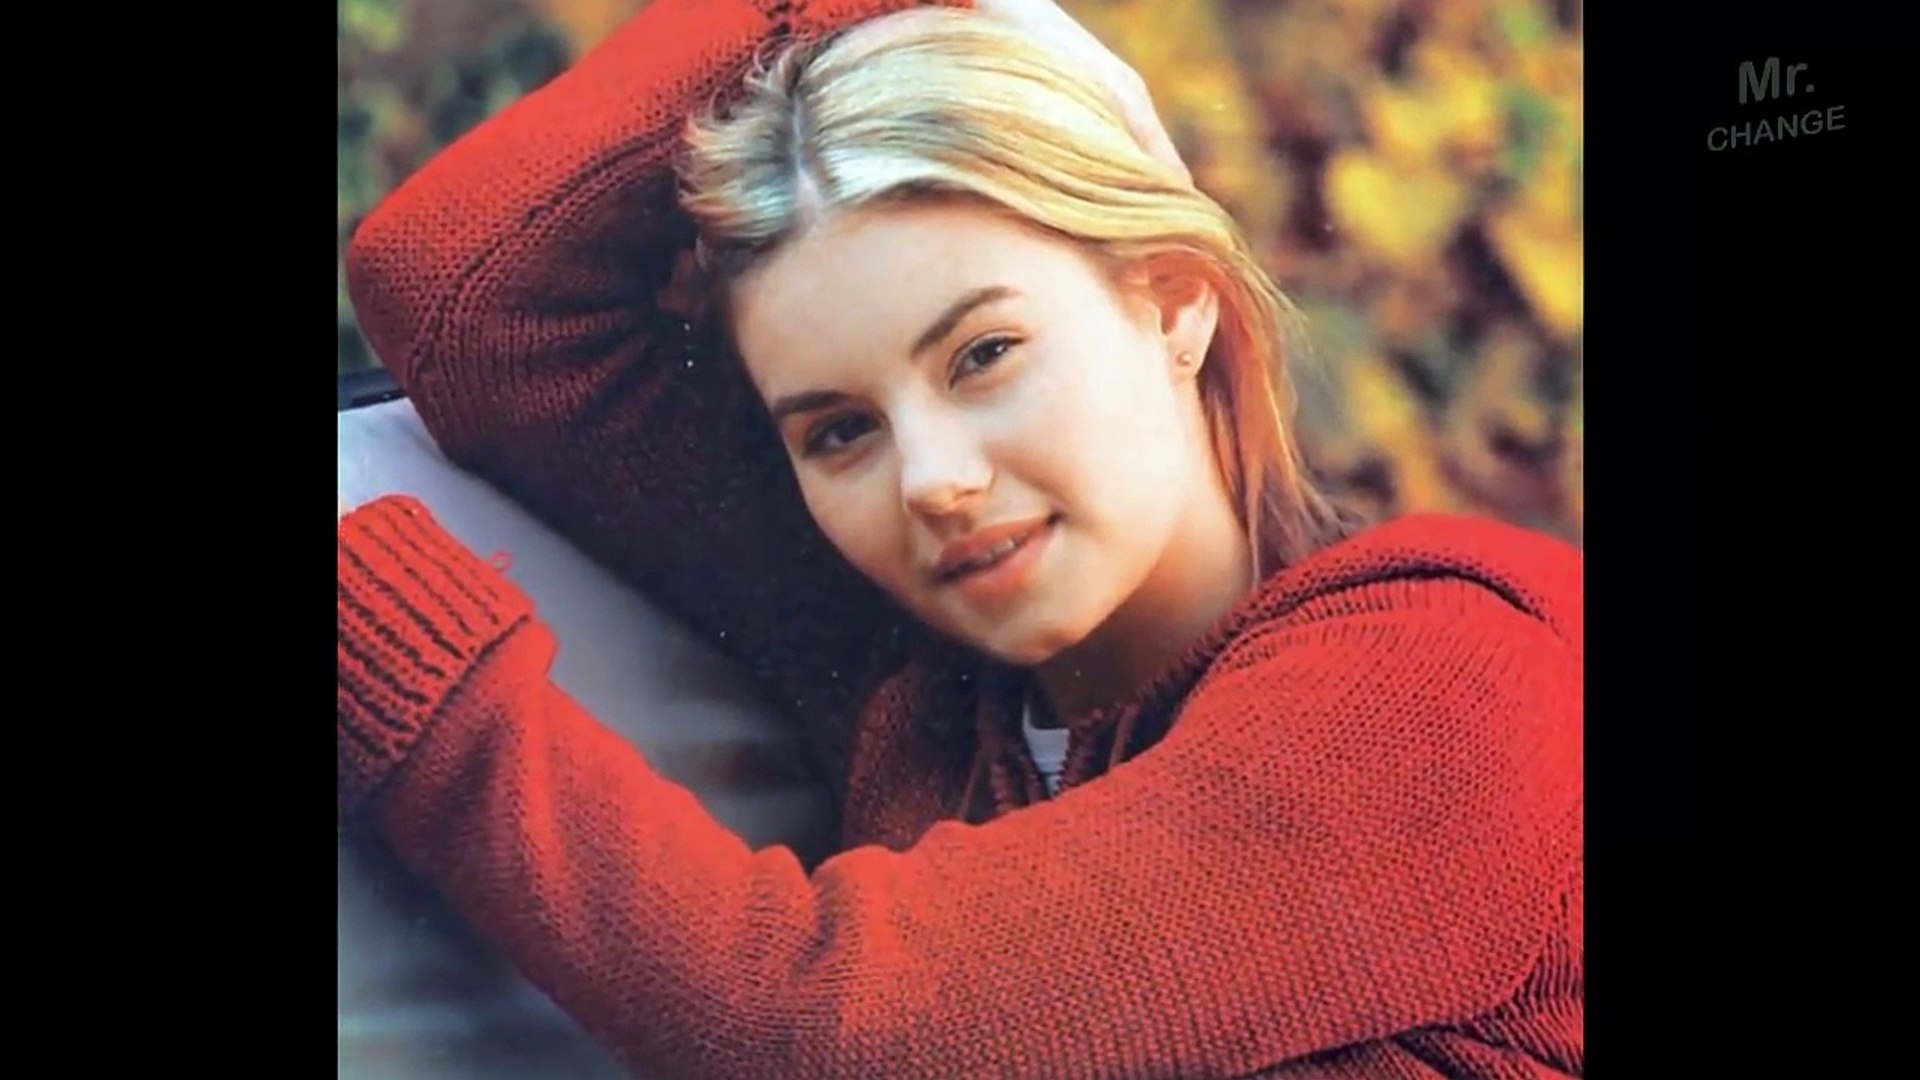 Elisha Cuthbert Change From Childhood To 2017 Video Dailymotion